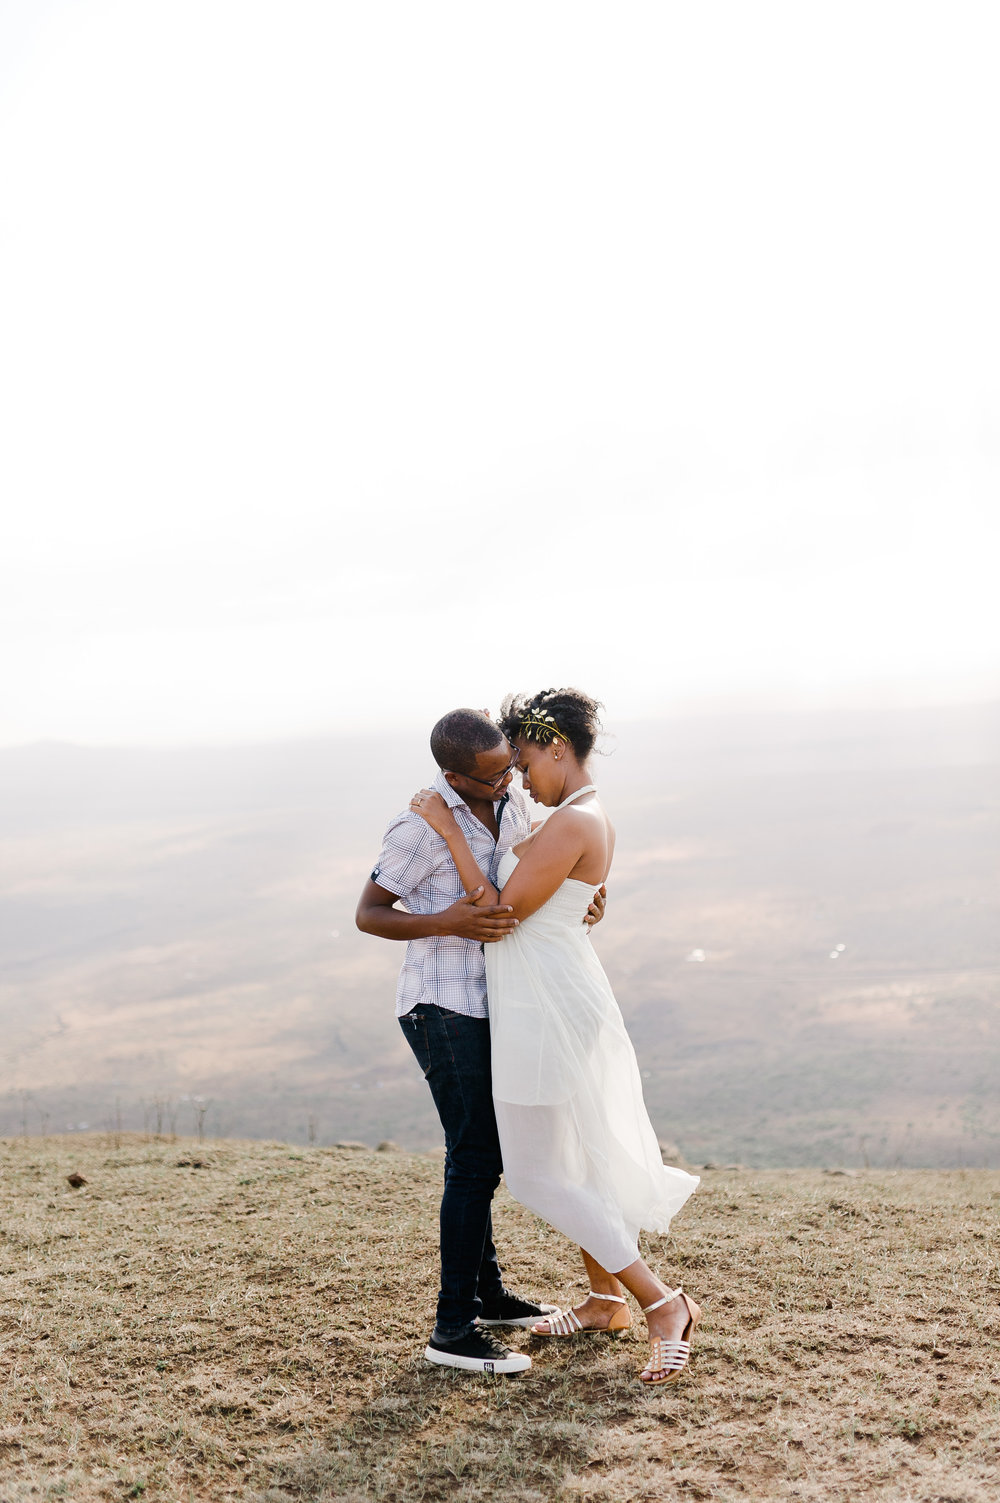 Anna-Hari-Photography-Kenyan-Wedding-Photographer-Ngong-Hills-Elopement-Kenya-21.jpg